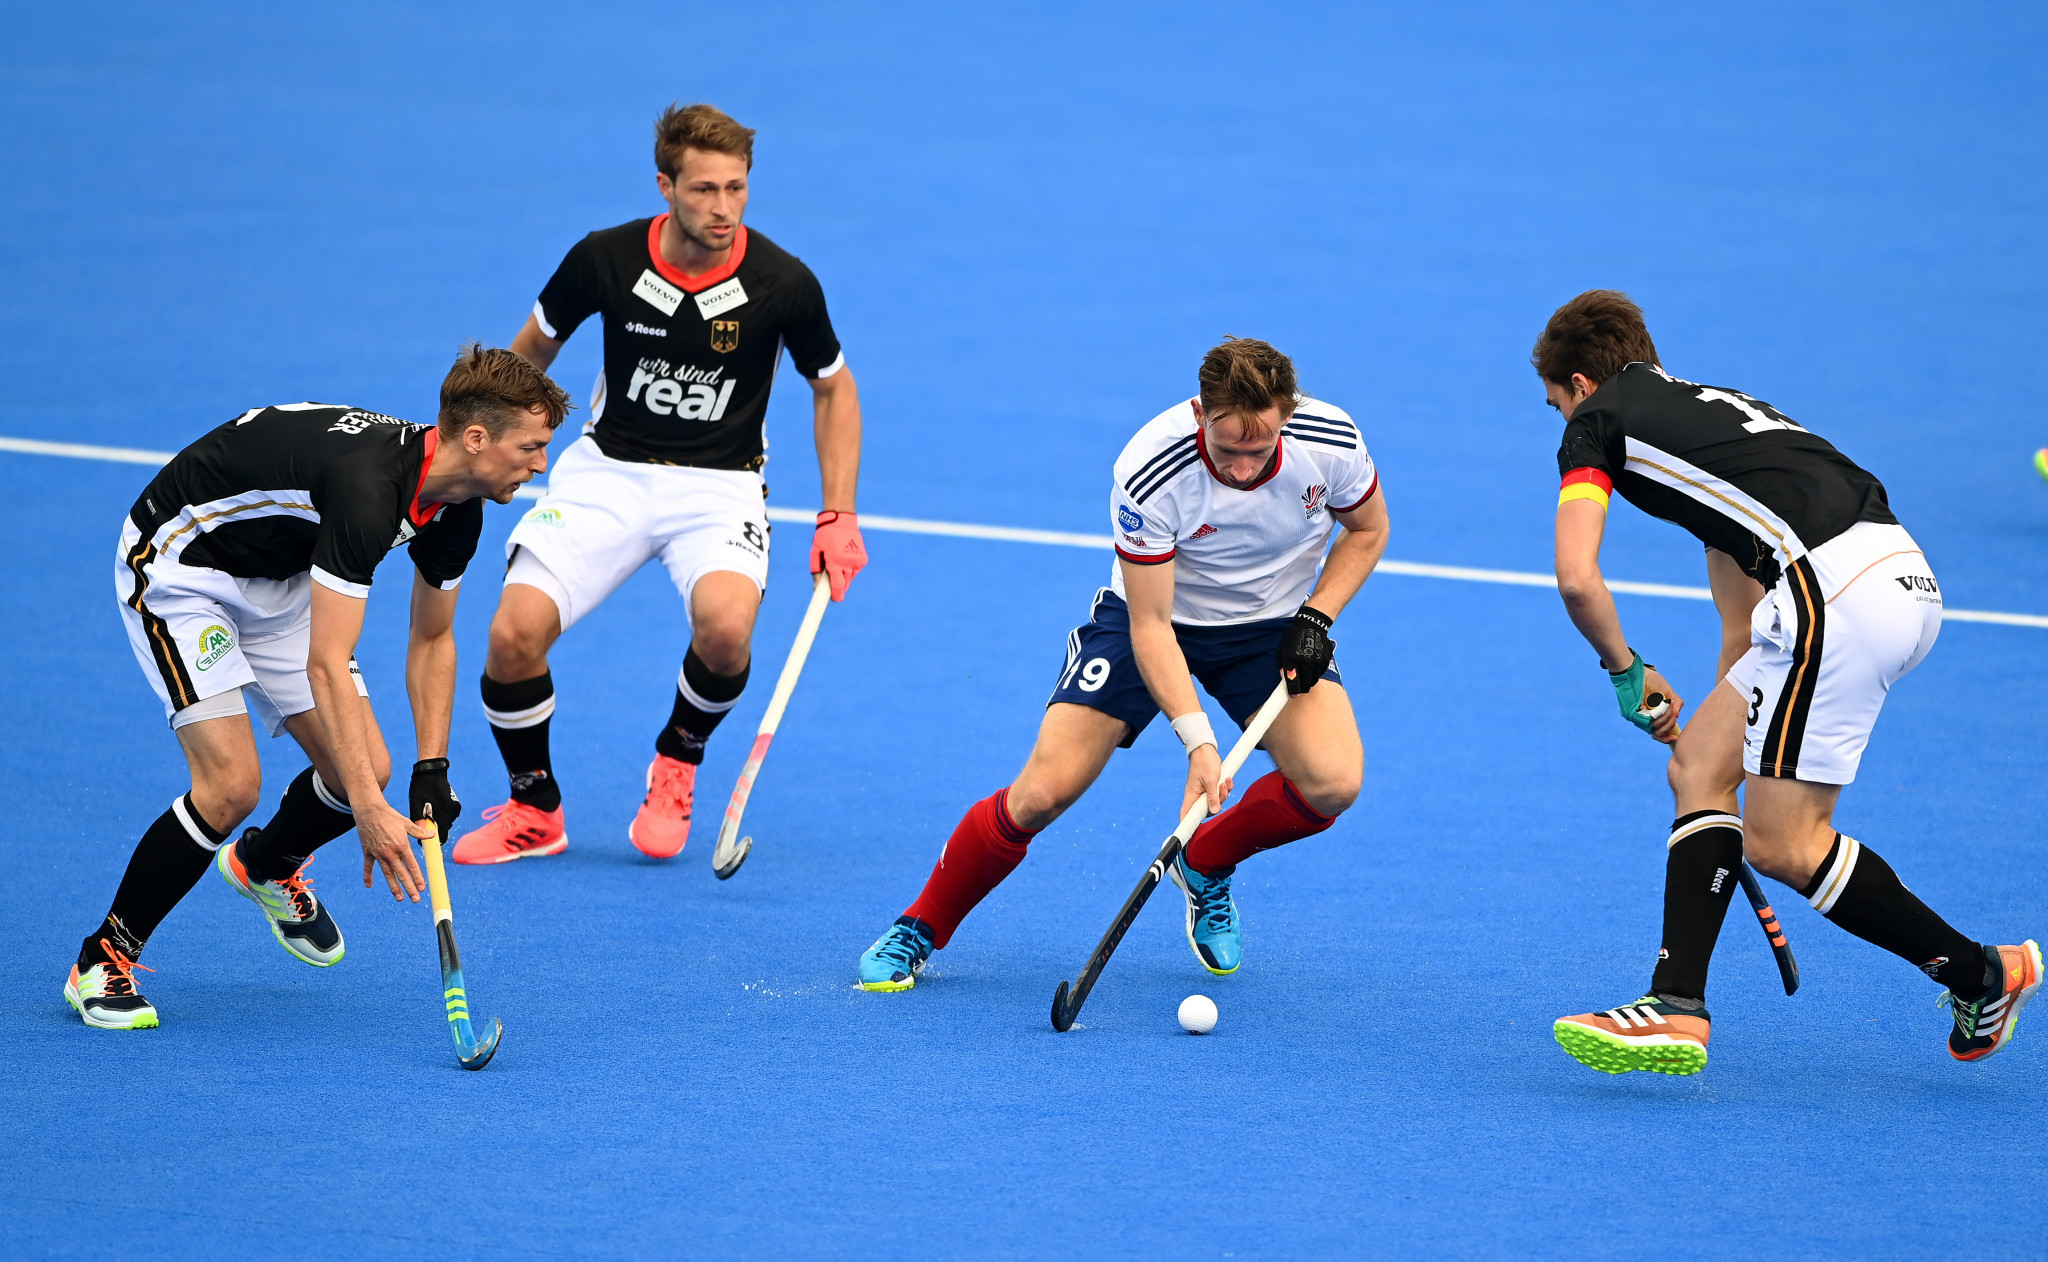 Britain claim double success against Germany in latest FIH Pro League matches